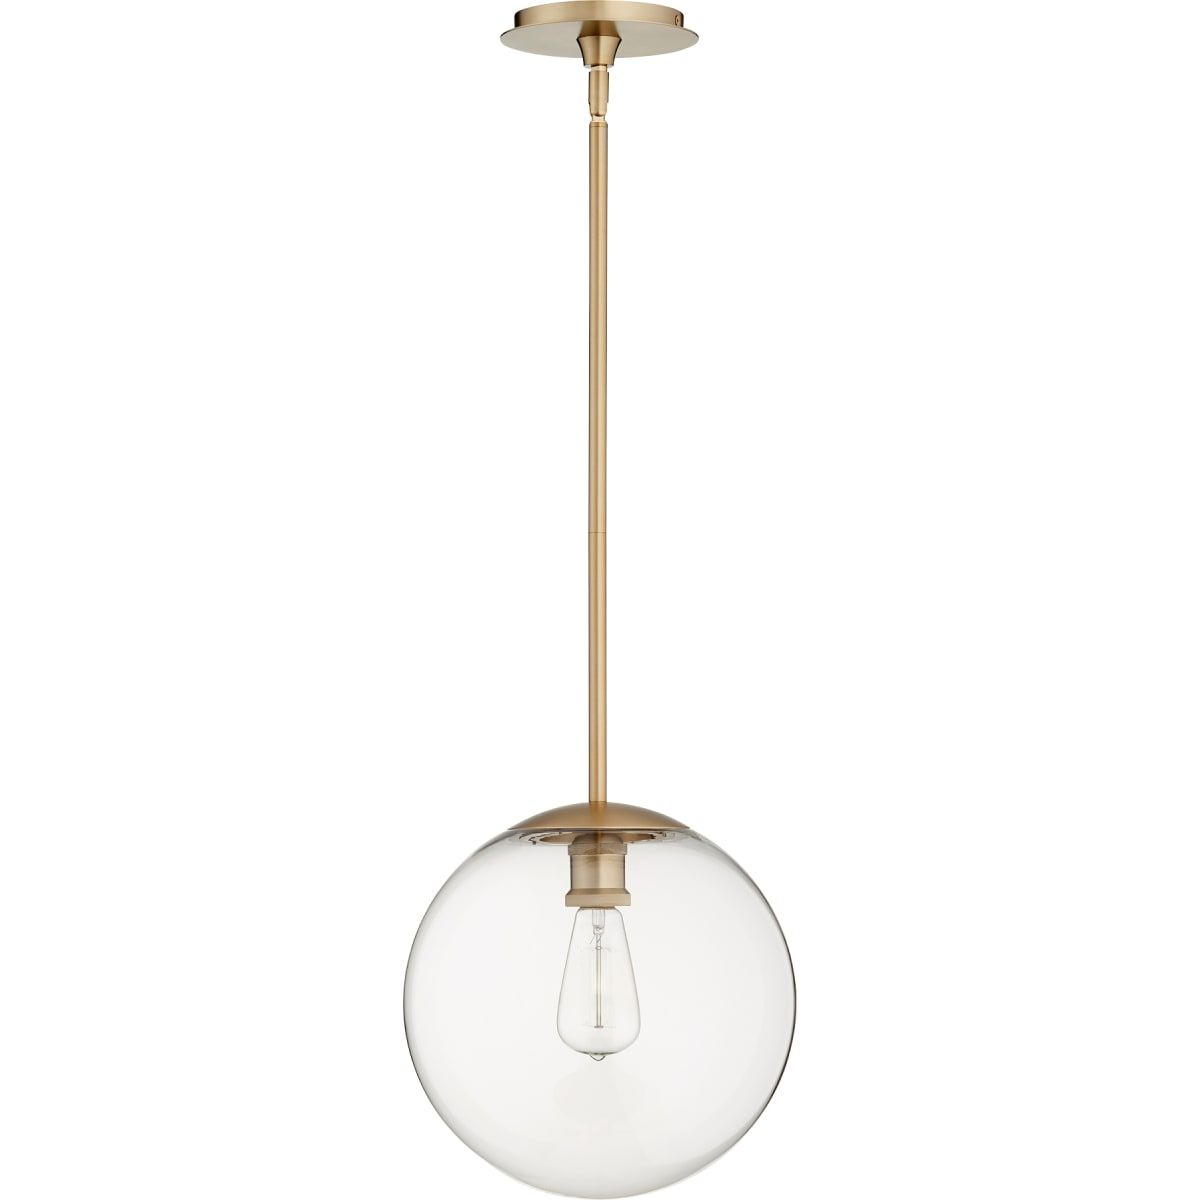 Quorum International 80 12 Build Com Brass Pendant Lights Kitchen Brass Pendant Light Globe Pendant Light